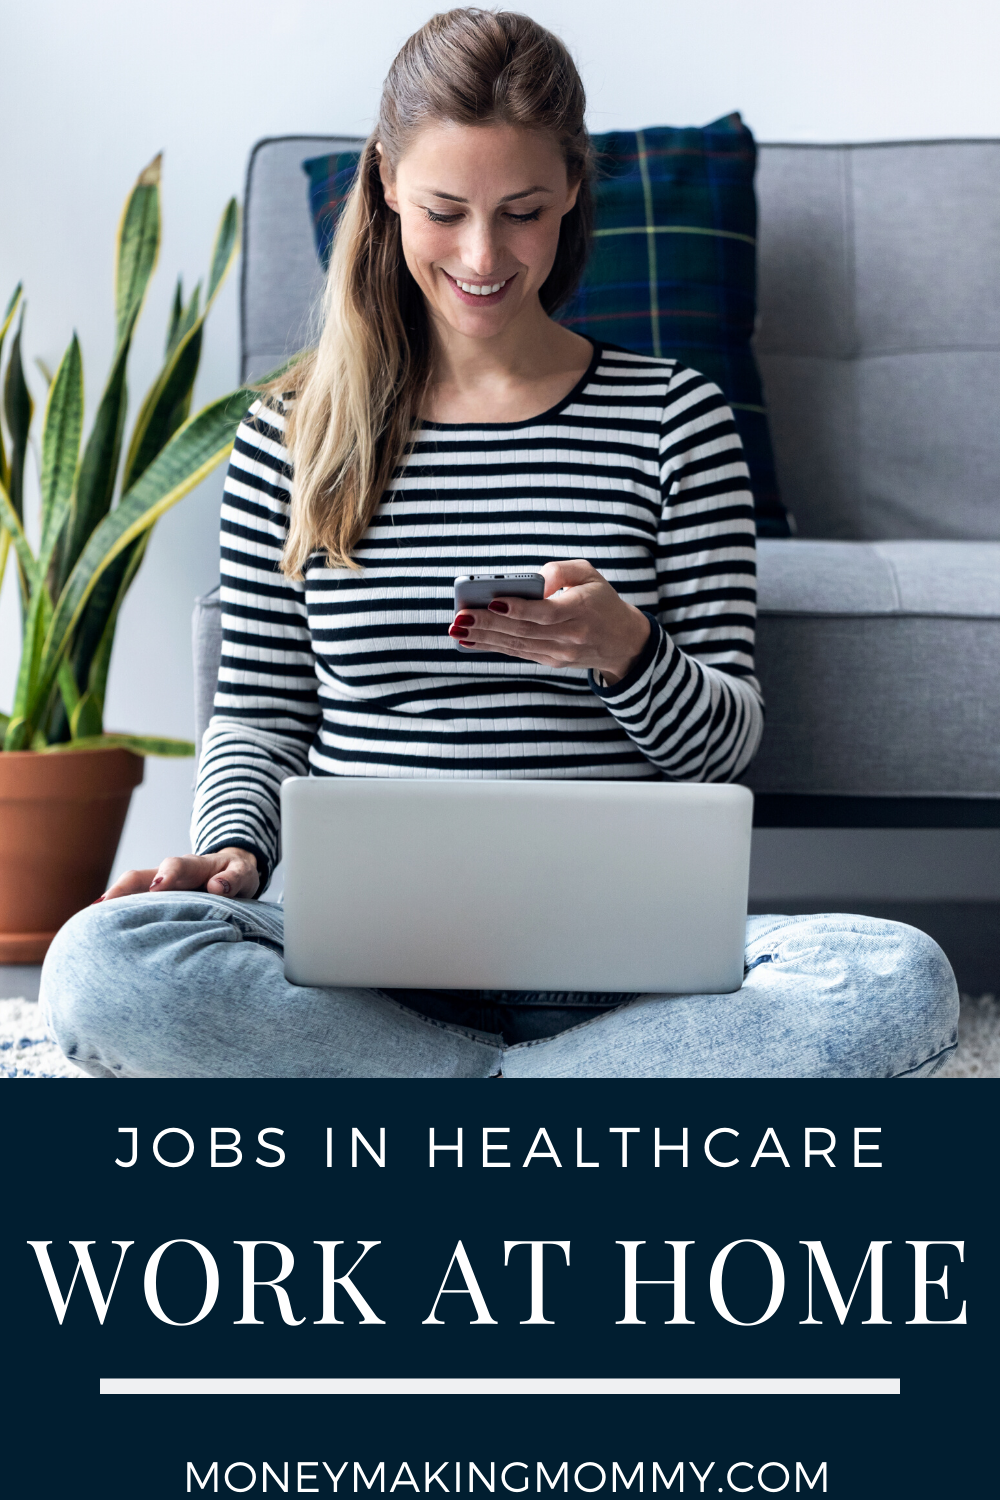 Health Care Professionals Can Work at Home for Humana in